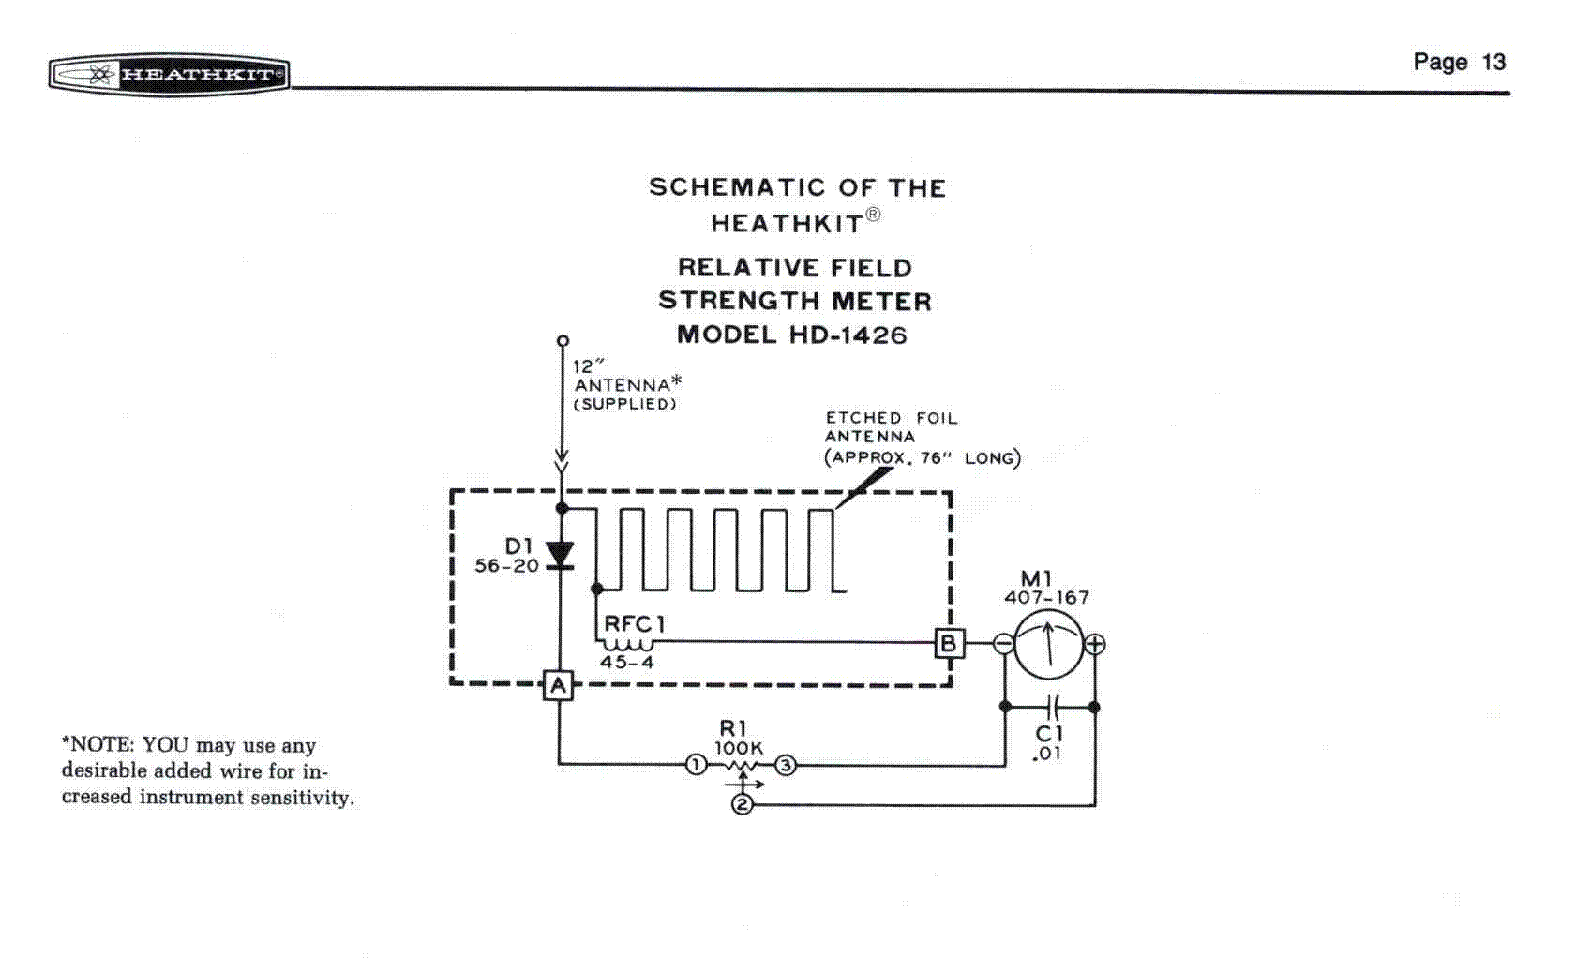 Field Strength Meter Kit : Heathkit oscilloscope schematic get free image